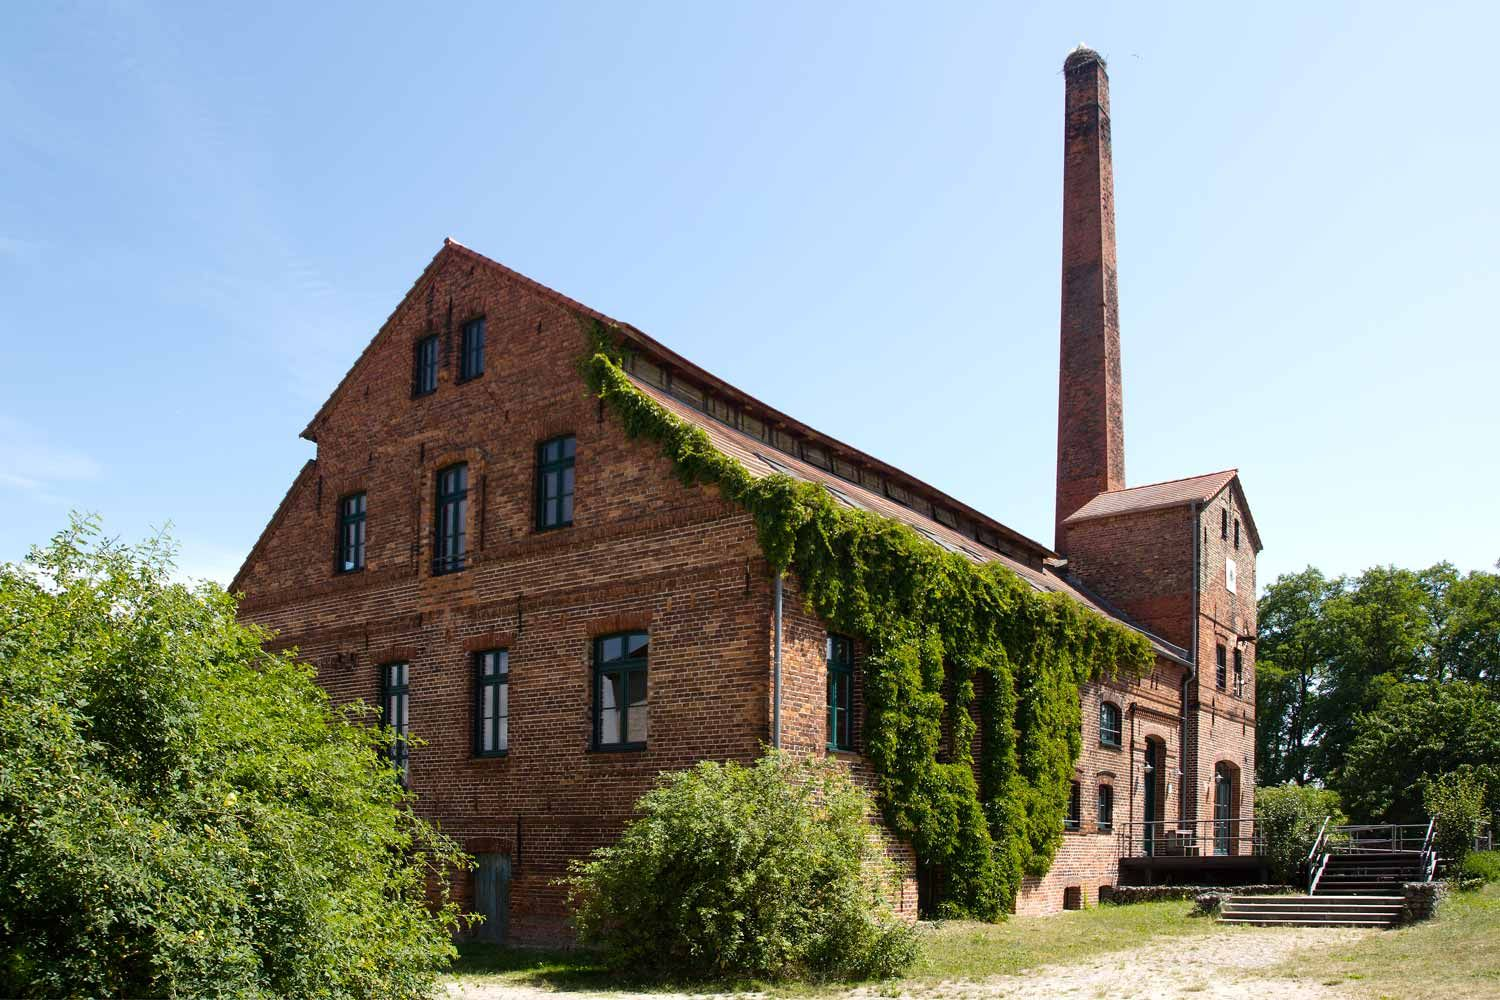 Alte Brennerei in Ribbeck, Havelland